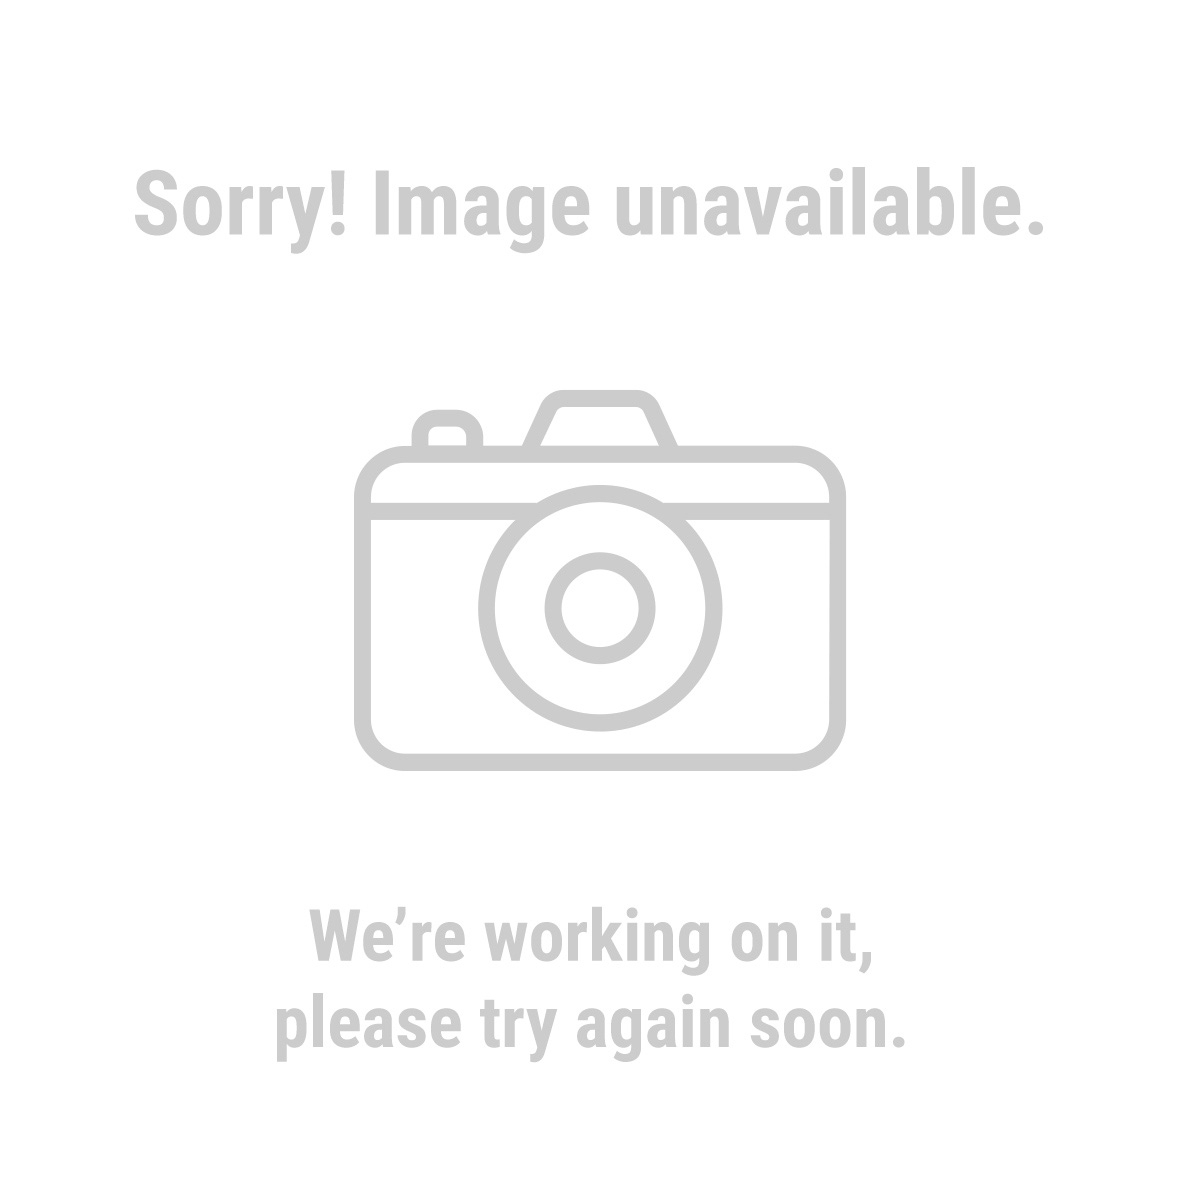 Pittsburgh 39391 40 Piece Carbon Steel SAE Tap and Die Set